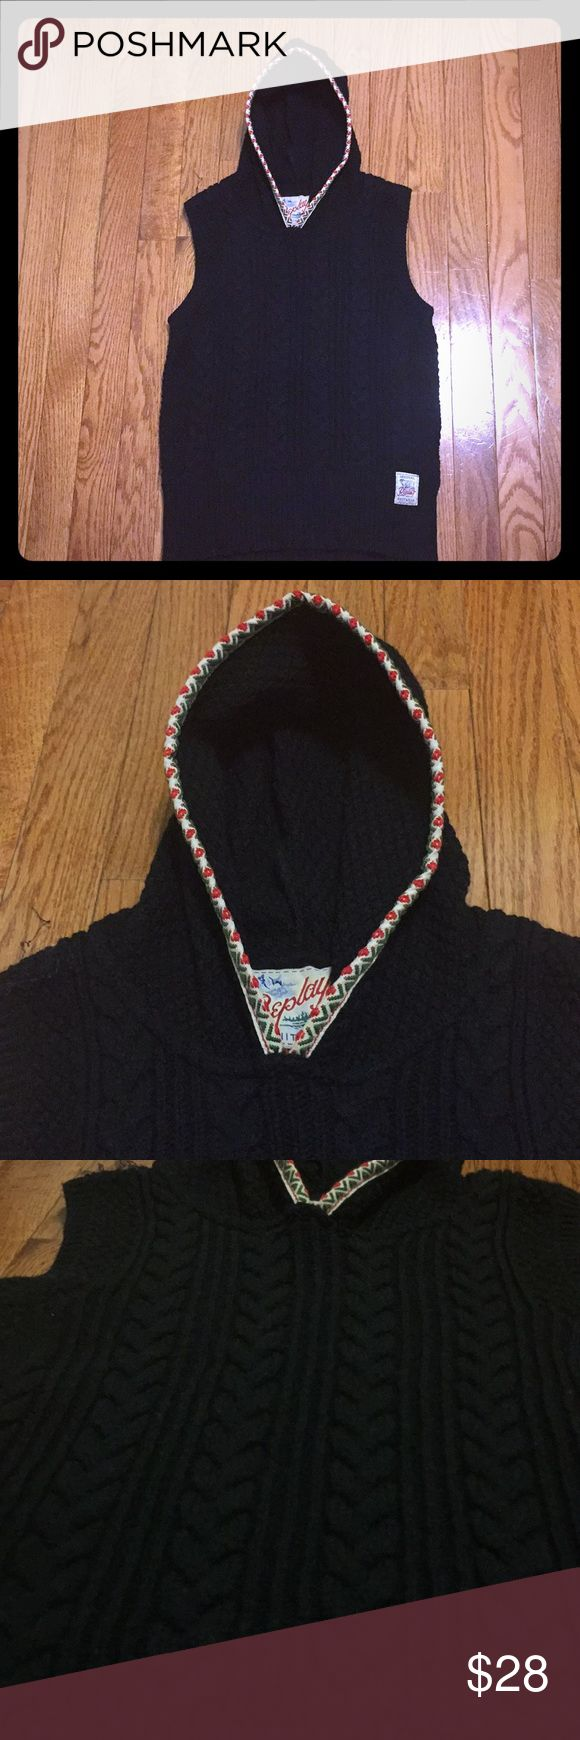 Cute Replay braid knit vest candy cane rim hood 🍭 Replay Black braided knit vest with candy cane rim hood - so cute and warm - quality workmanship and form fitting shape - sz S, fits sz 4-6 best - only worn twice, very minor fuzz, not noticeable at all when worn. Offers welcome. Extra discount for bundles ;) Replay Sweaters